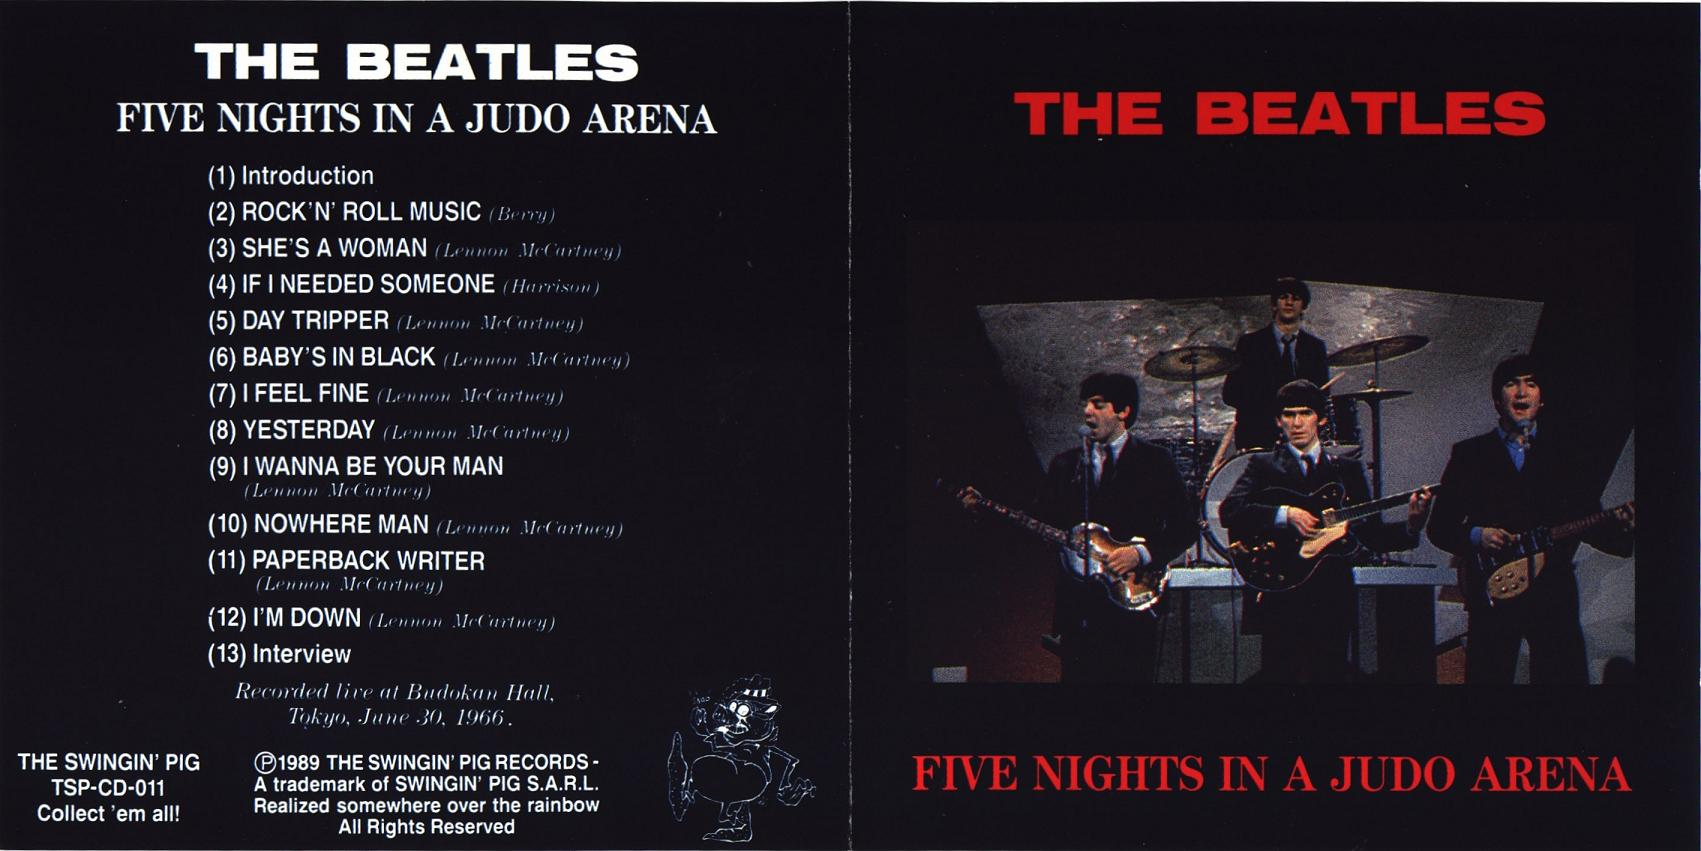 1966-06-30-5_nights_in_a_judo_arena-front